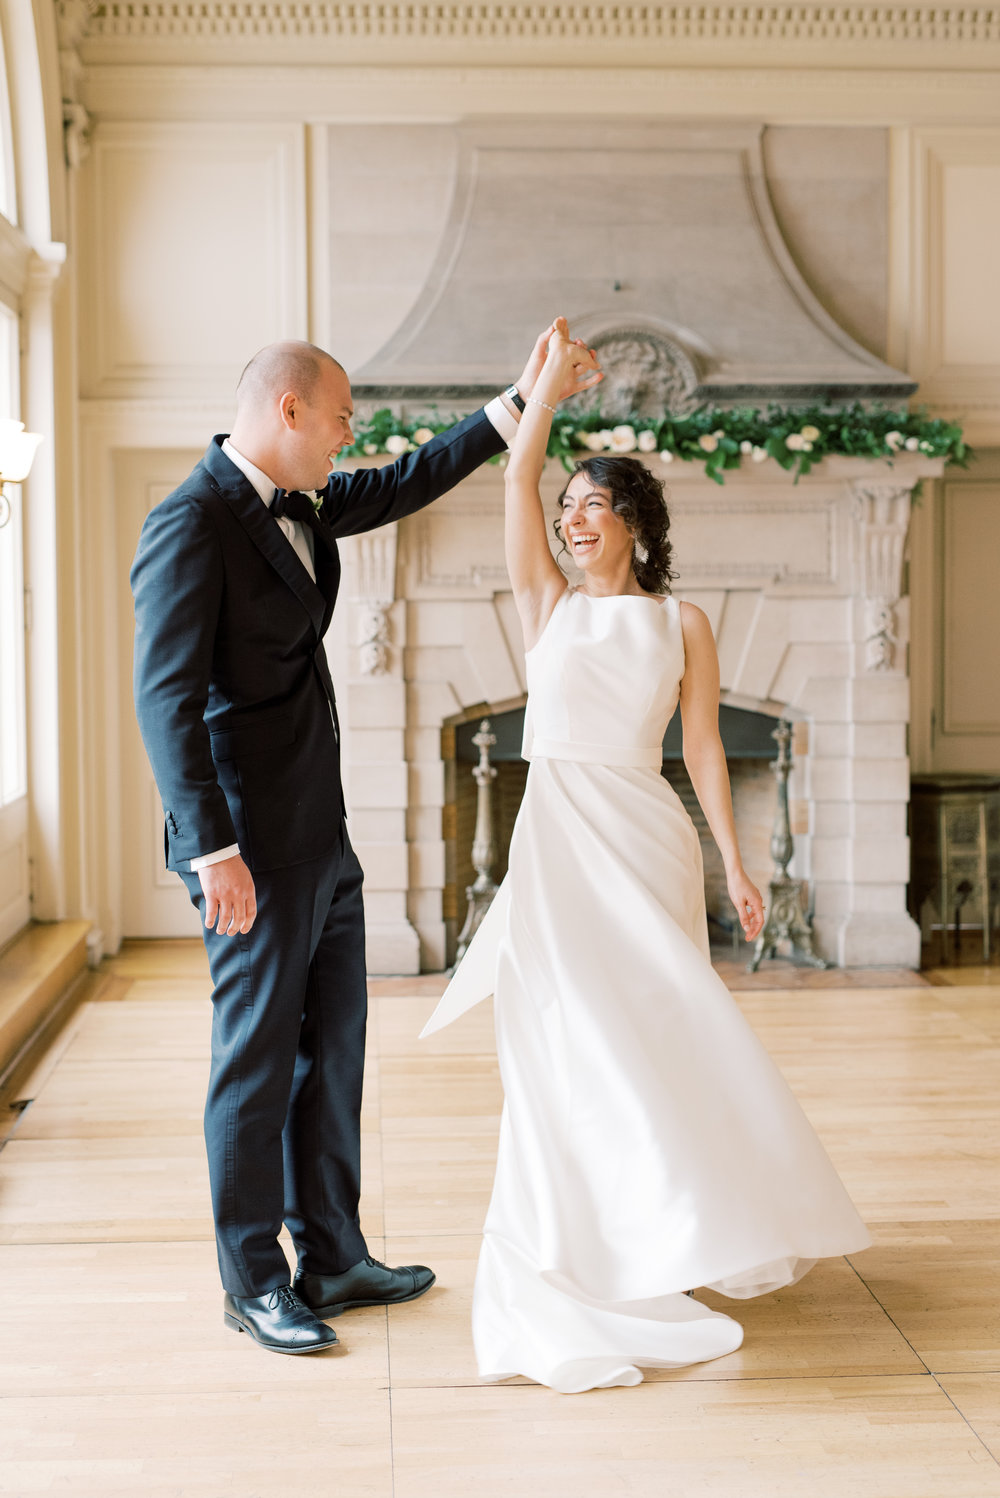 We love the romantic gesture of a twirl and how it brings out such a big smile in our brides, like on this romantic and classic wedding day for their french inspired green and white Cairnwood Estate wedding.